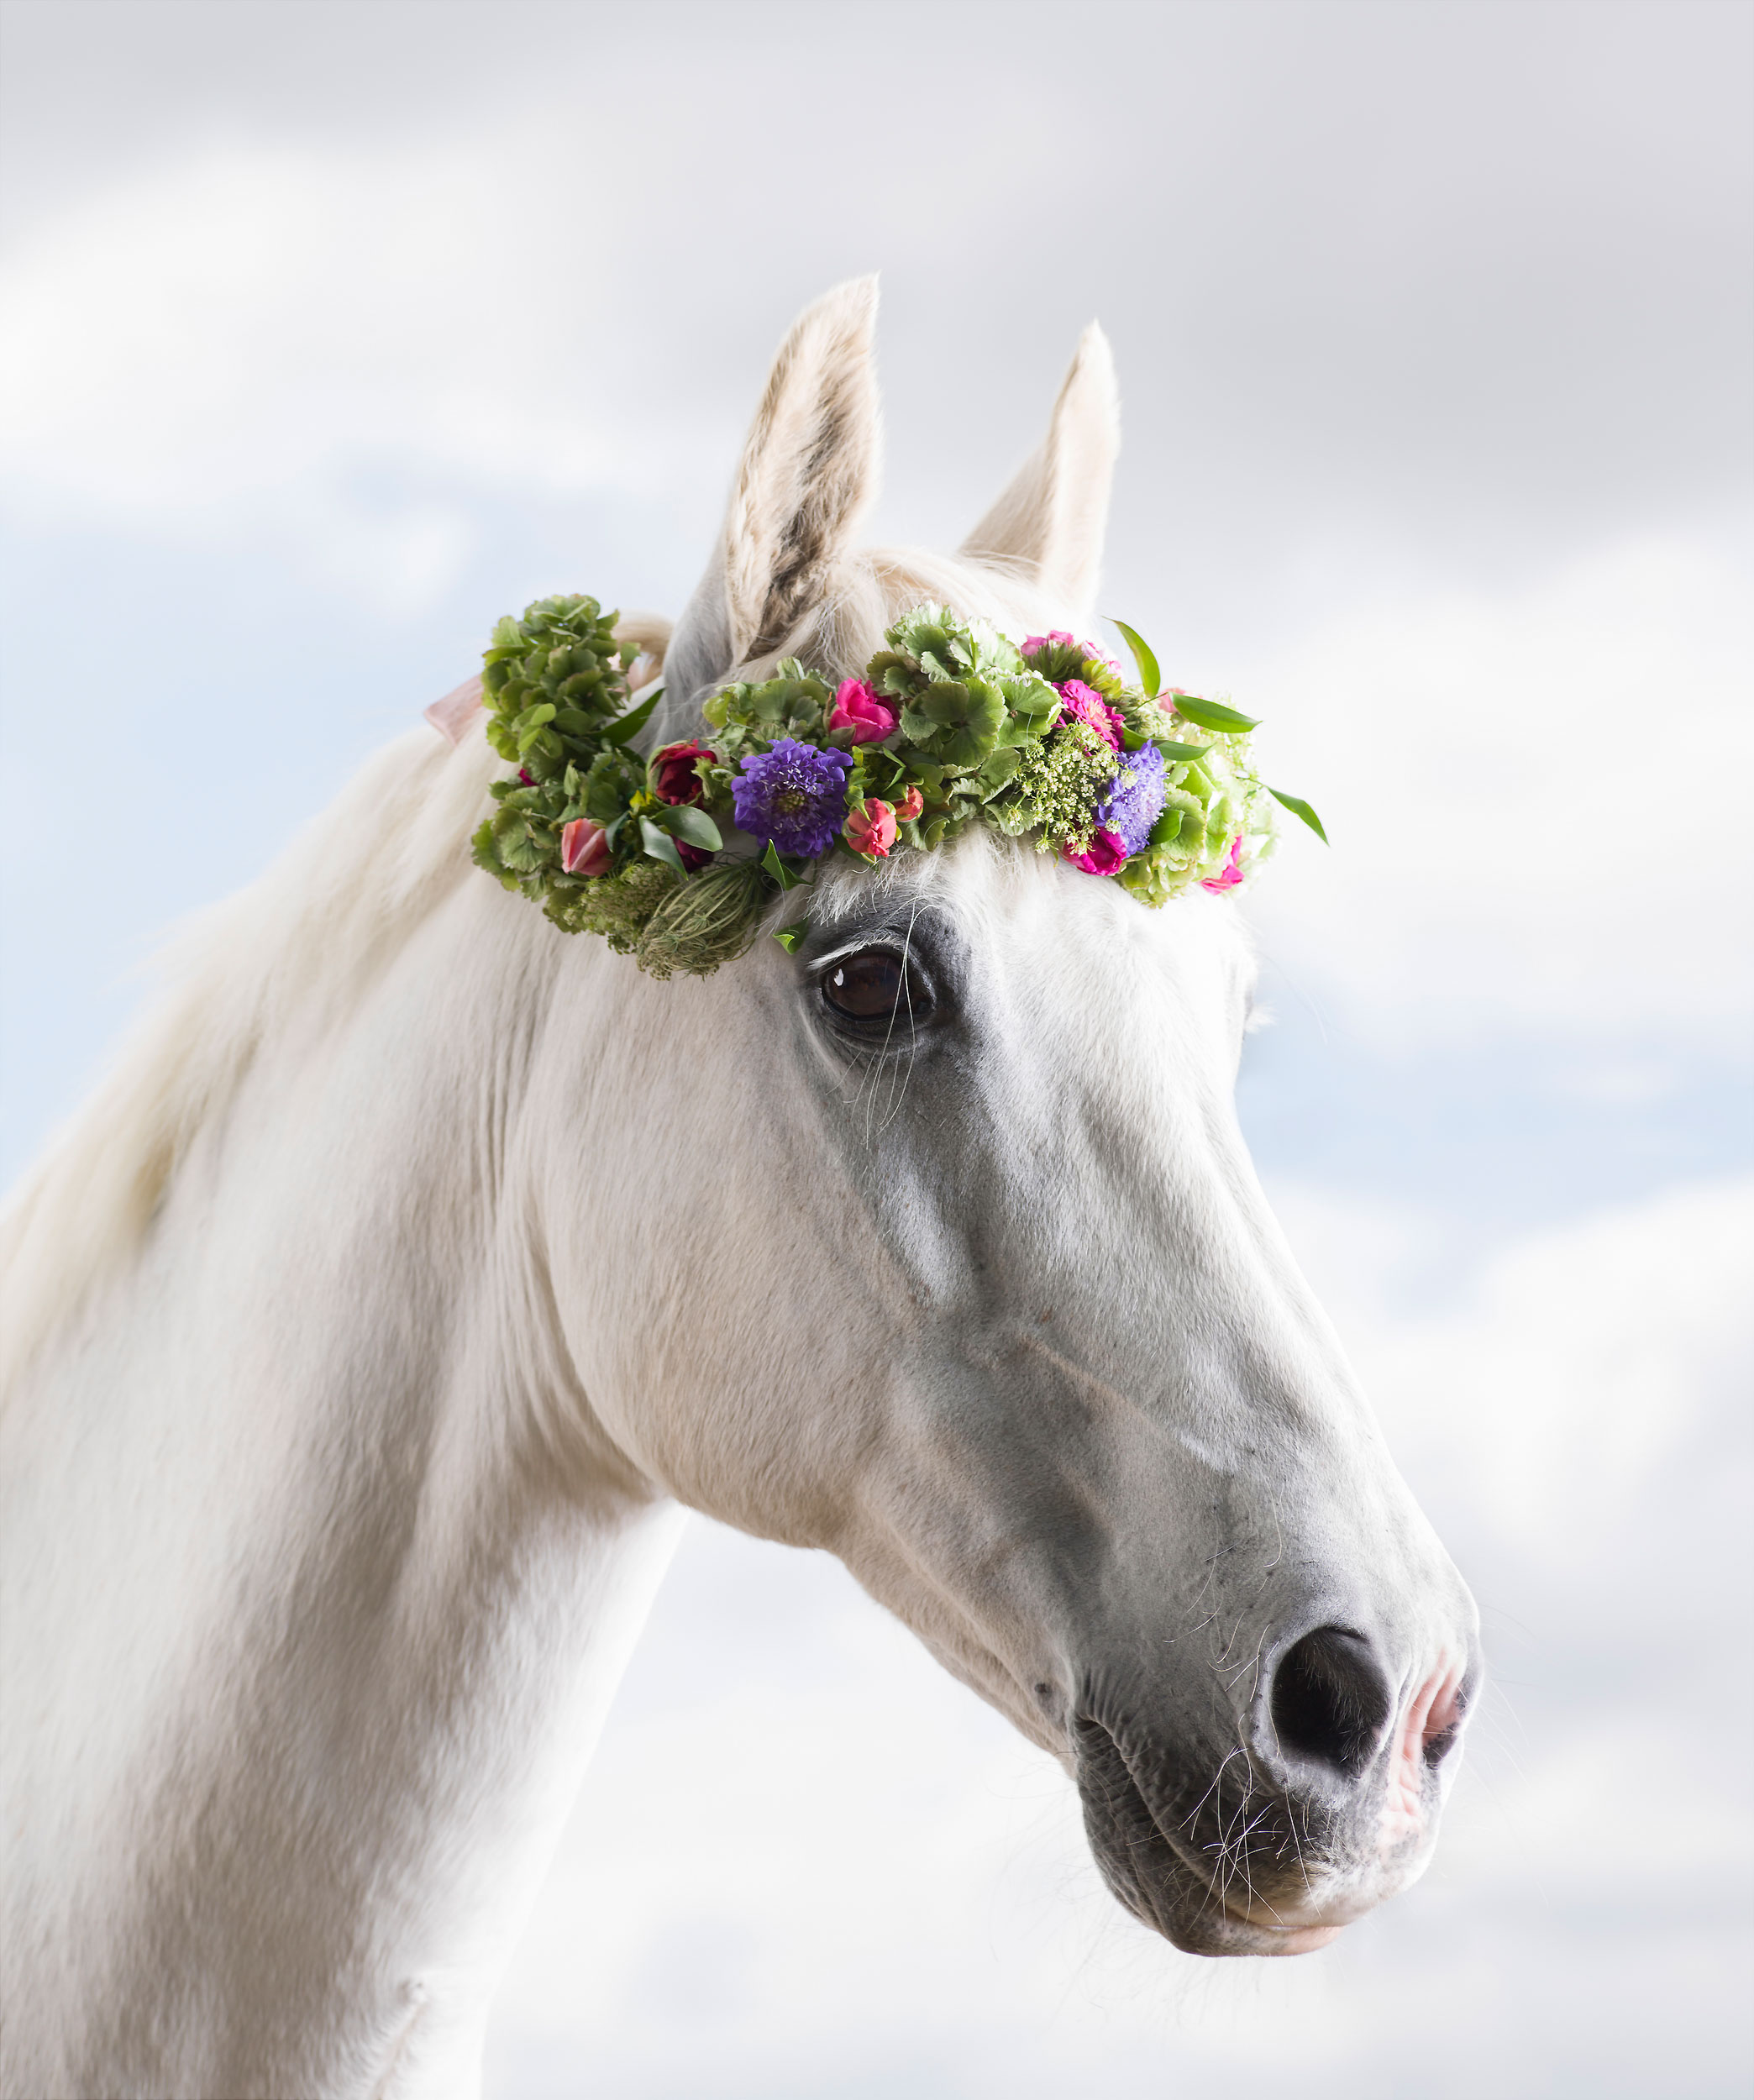 Mark-Harvey-Flower-Horse